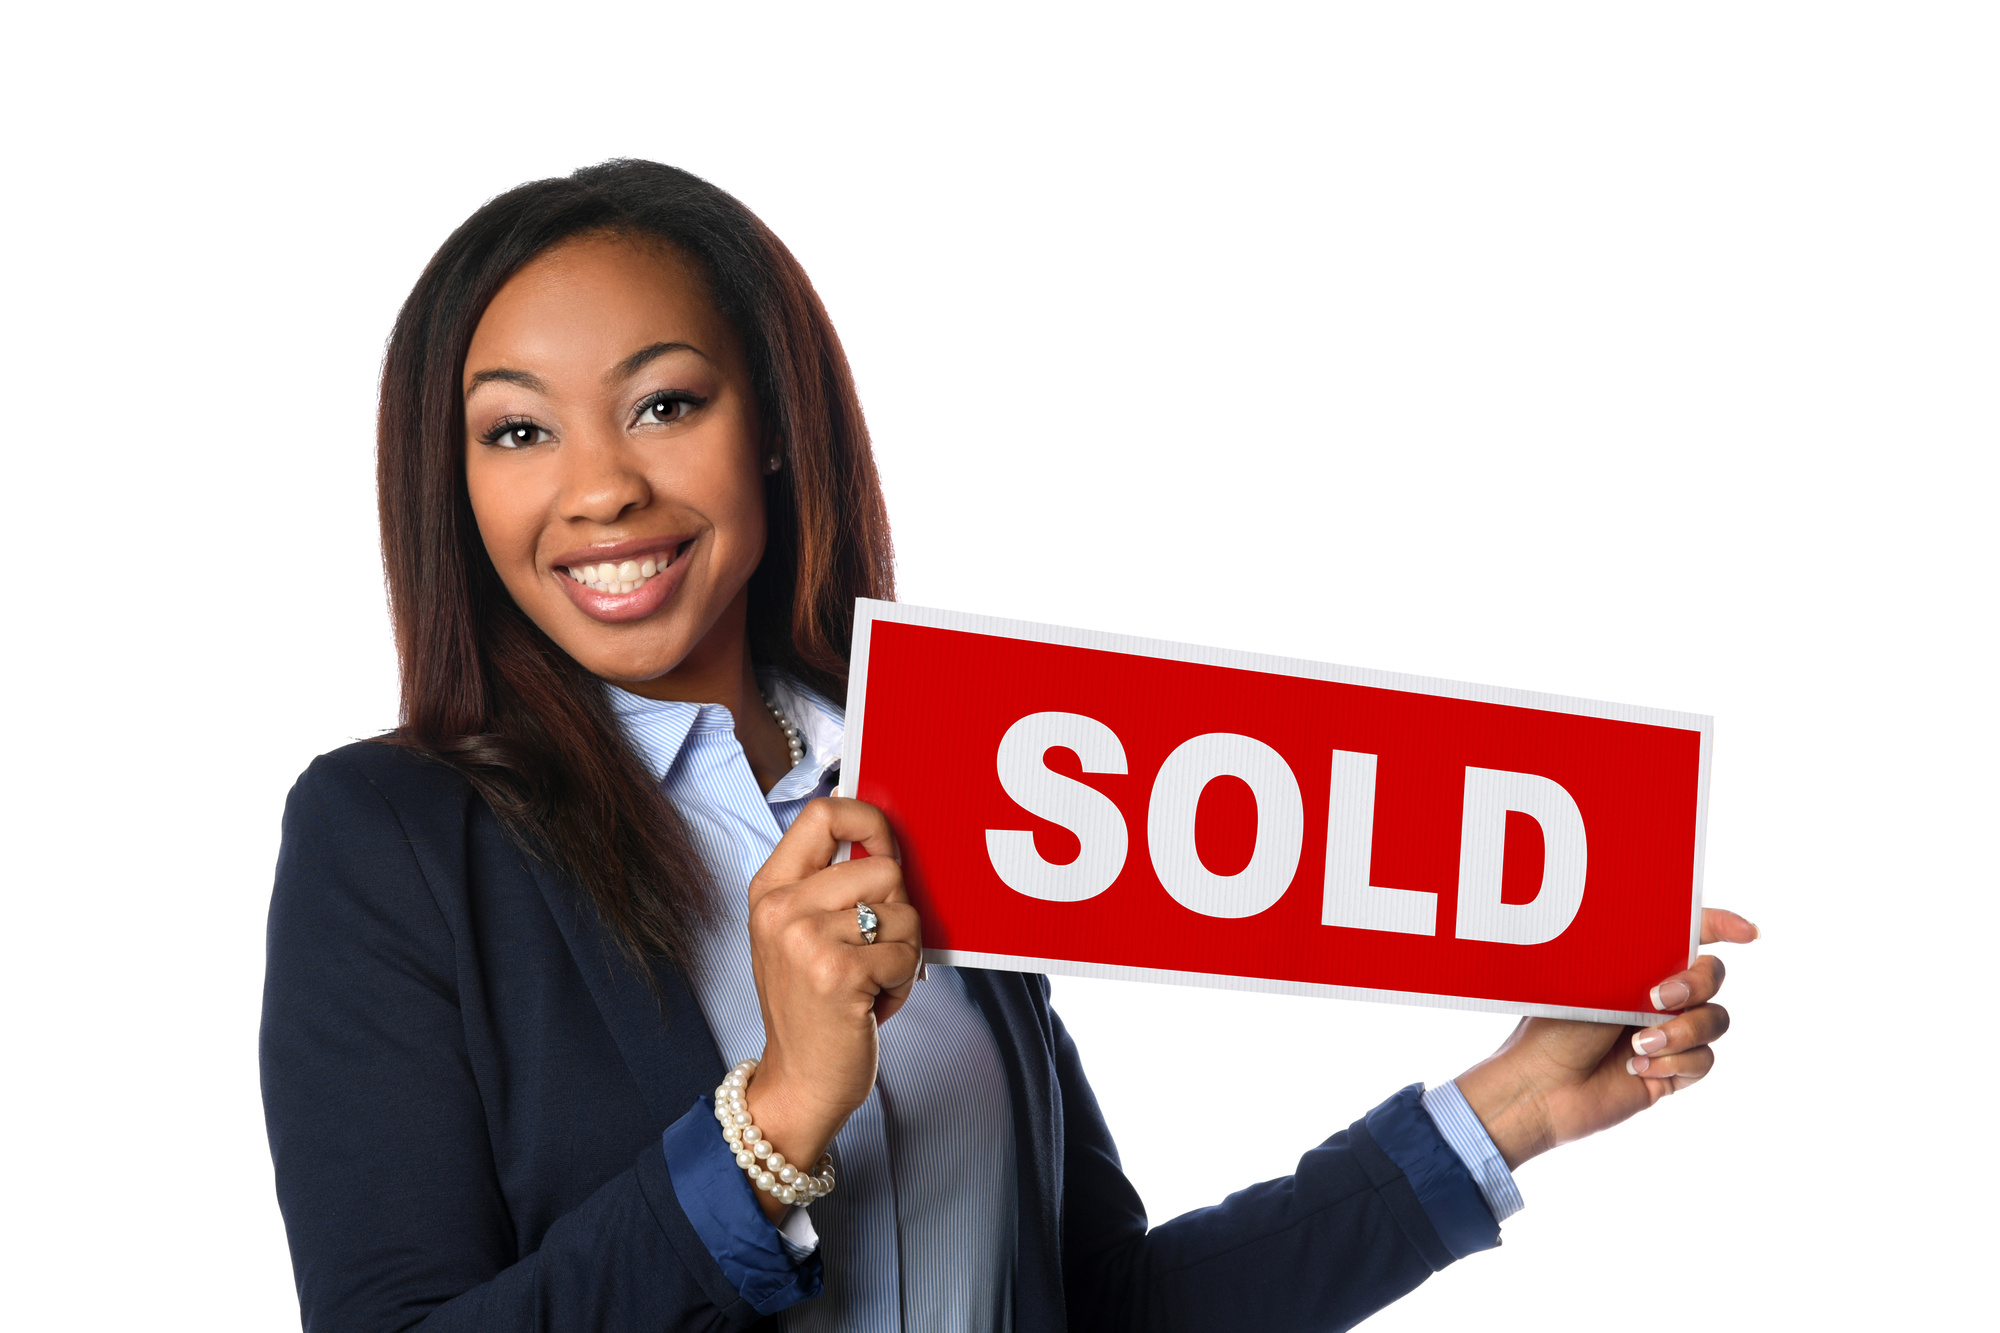 Low Home Inventory: Why It's Important to Have a Well-Connected Real Estate Agent